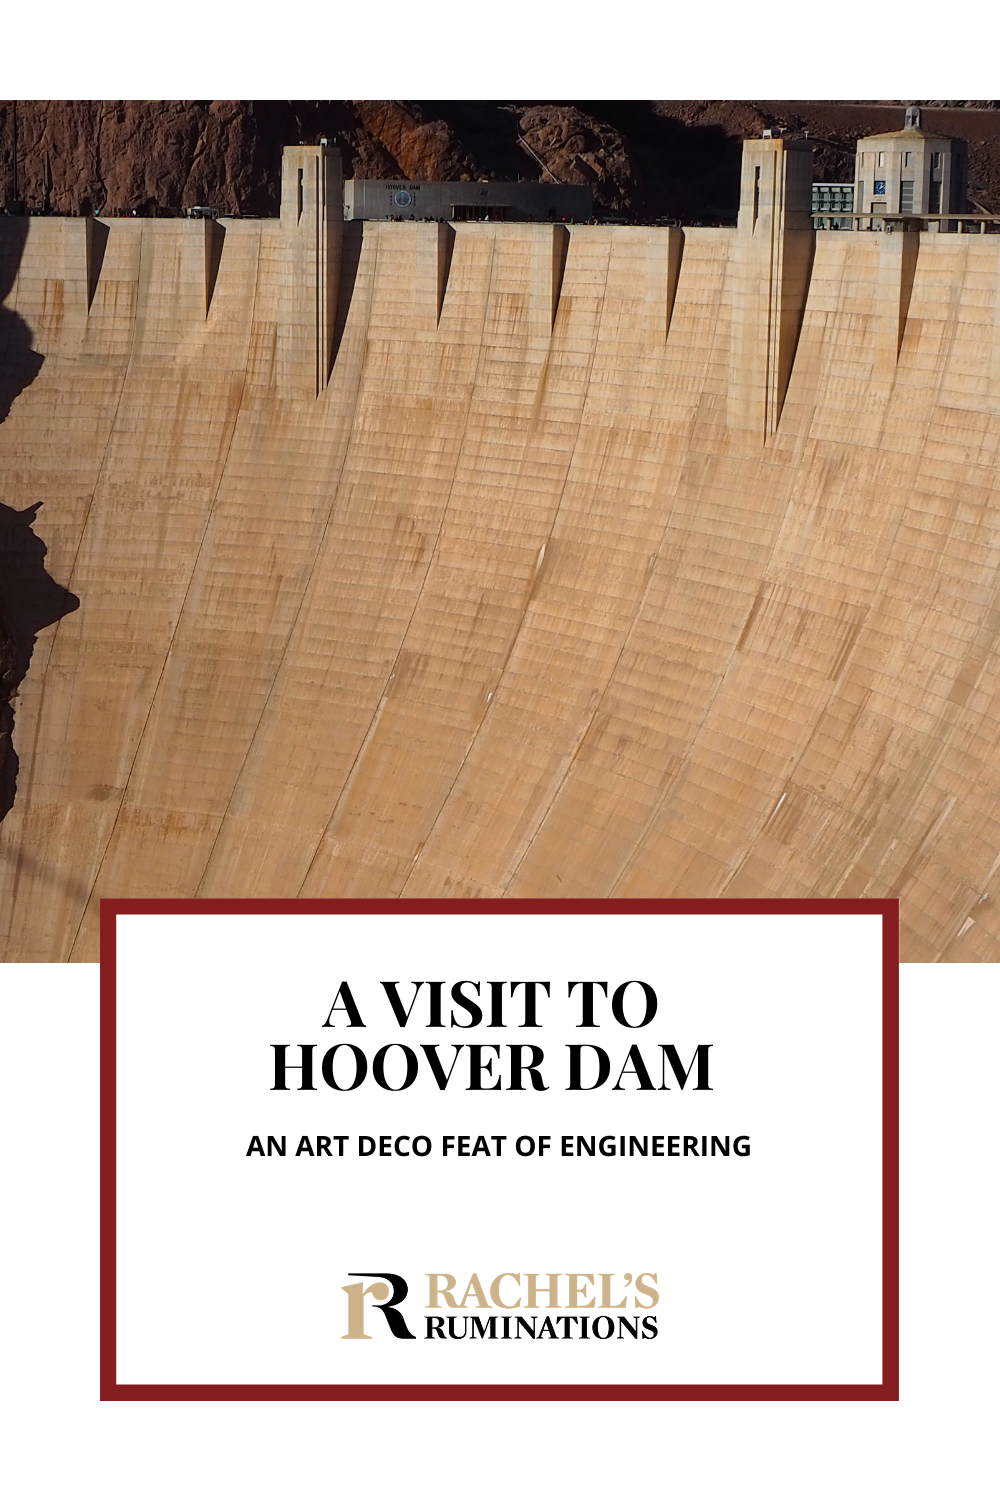 """""""My name is Arcelia and I'll be your dam tour guide."""" This was our introduction to visiting Hoover Dam, a masterpiece of Art Deco industrial design. Read about the Hoover Dam tour here! via @rachelsruminations"""